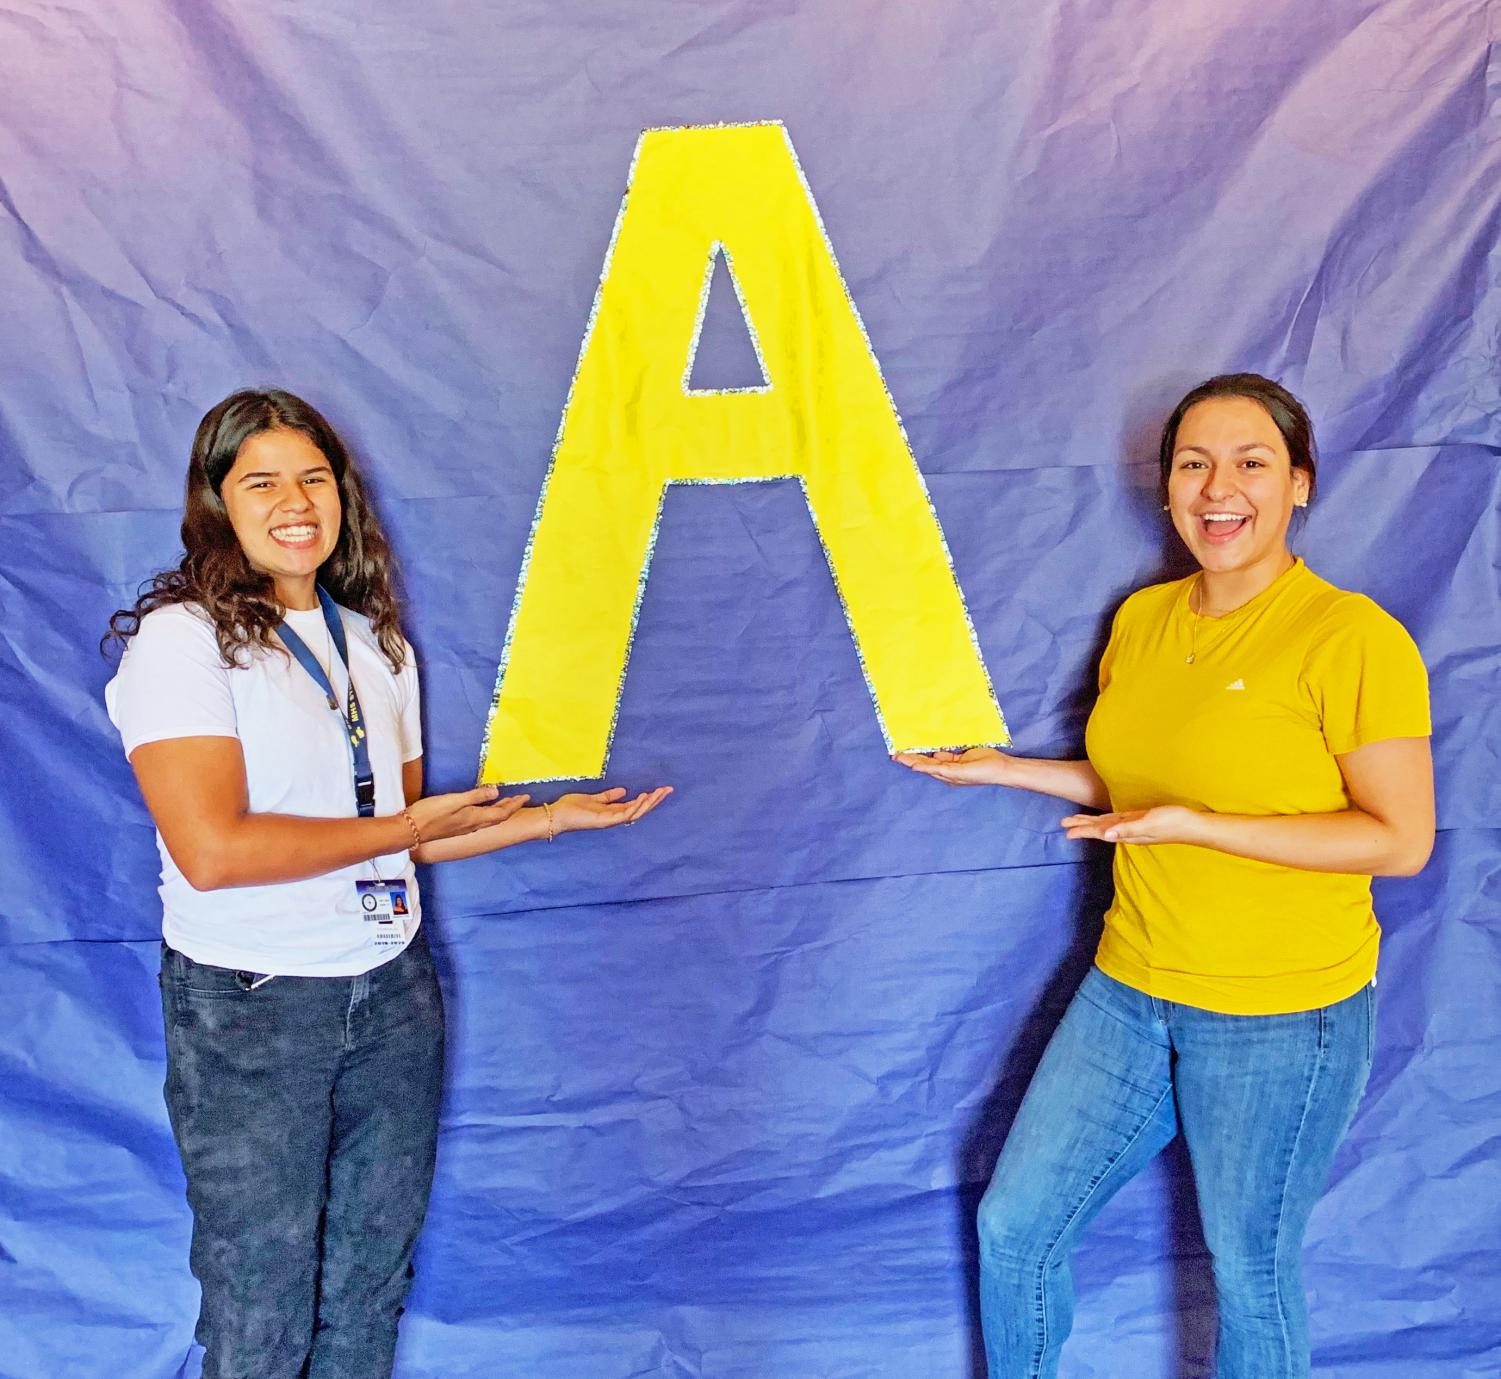 Victoria Millon (left) and Samantha Garcia (Right ) posing in front of poster